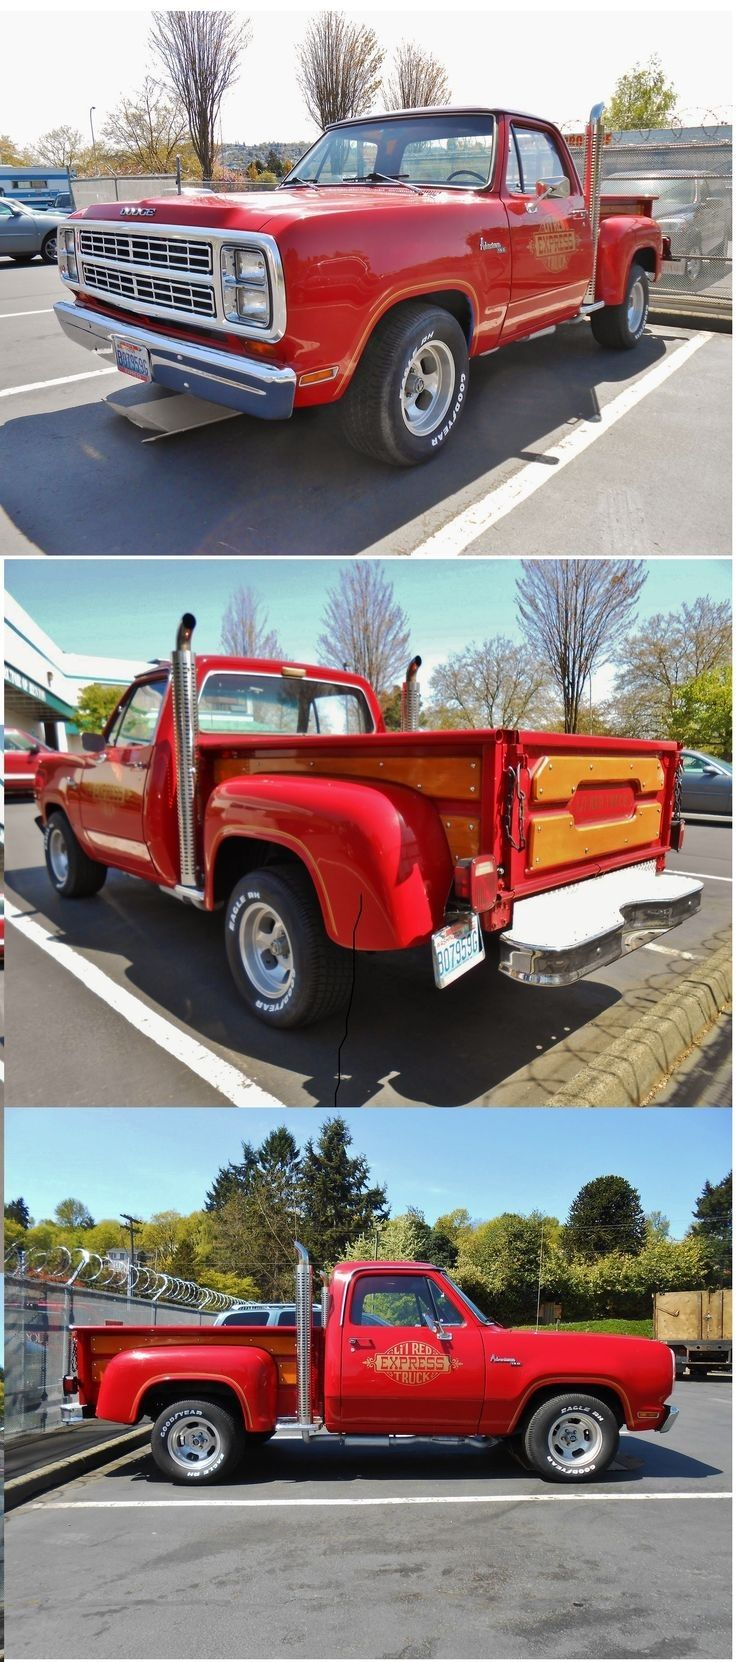 Home by year 1979 cars 1979 trucks car pictures - 1979 Dodge L Il Red Express Truck With Only 5 118 Made The